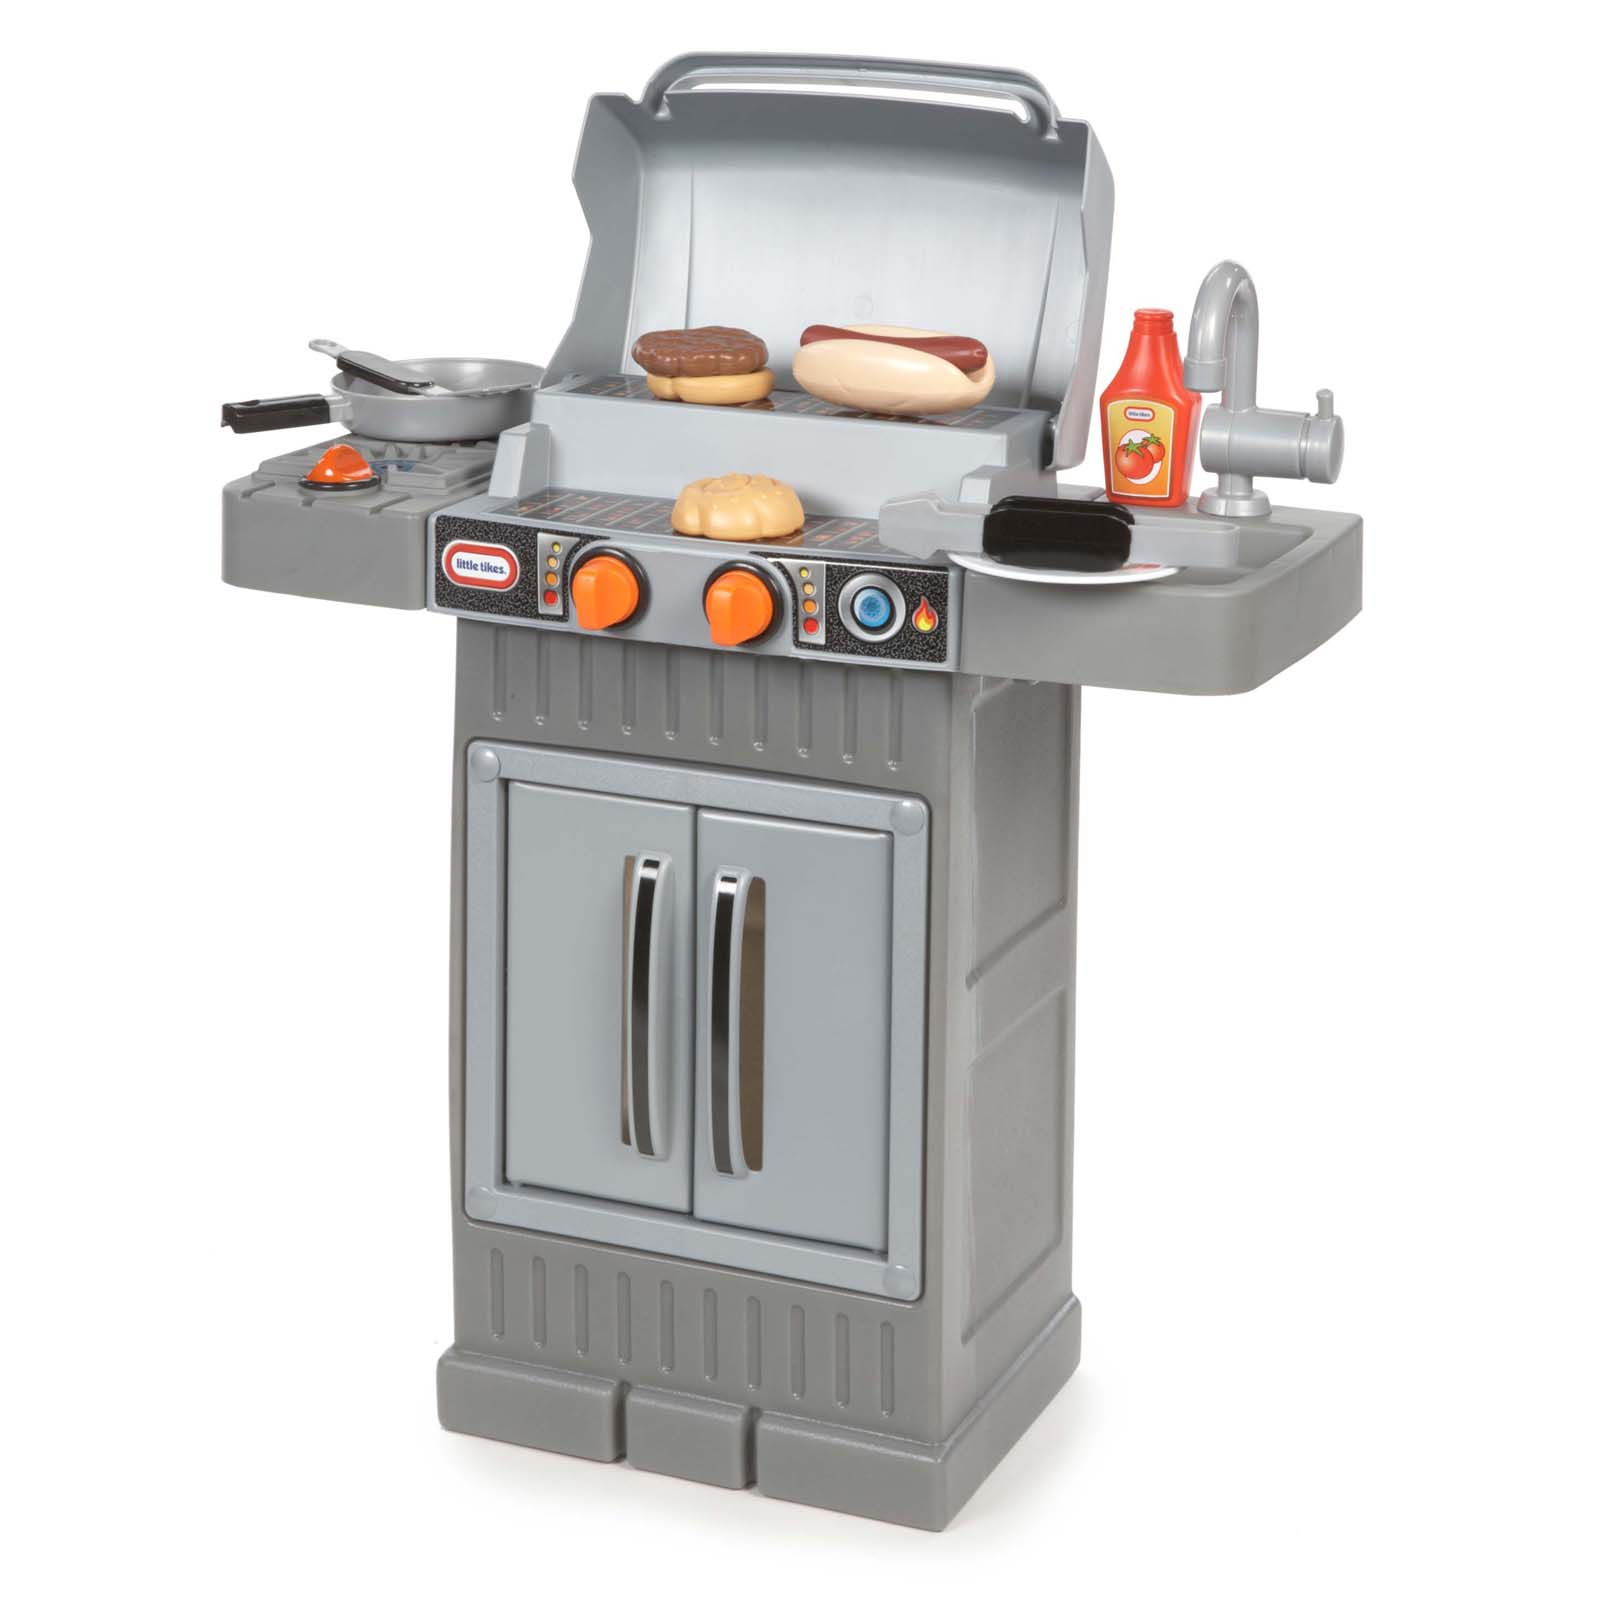 toys r us grill